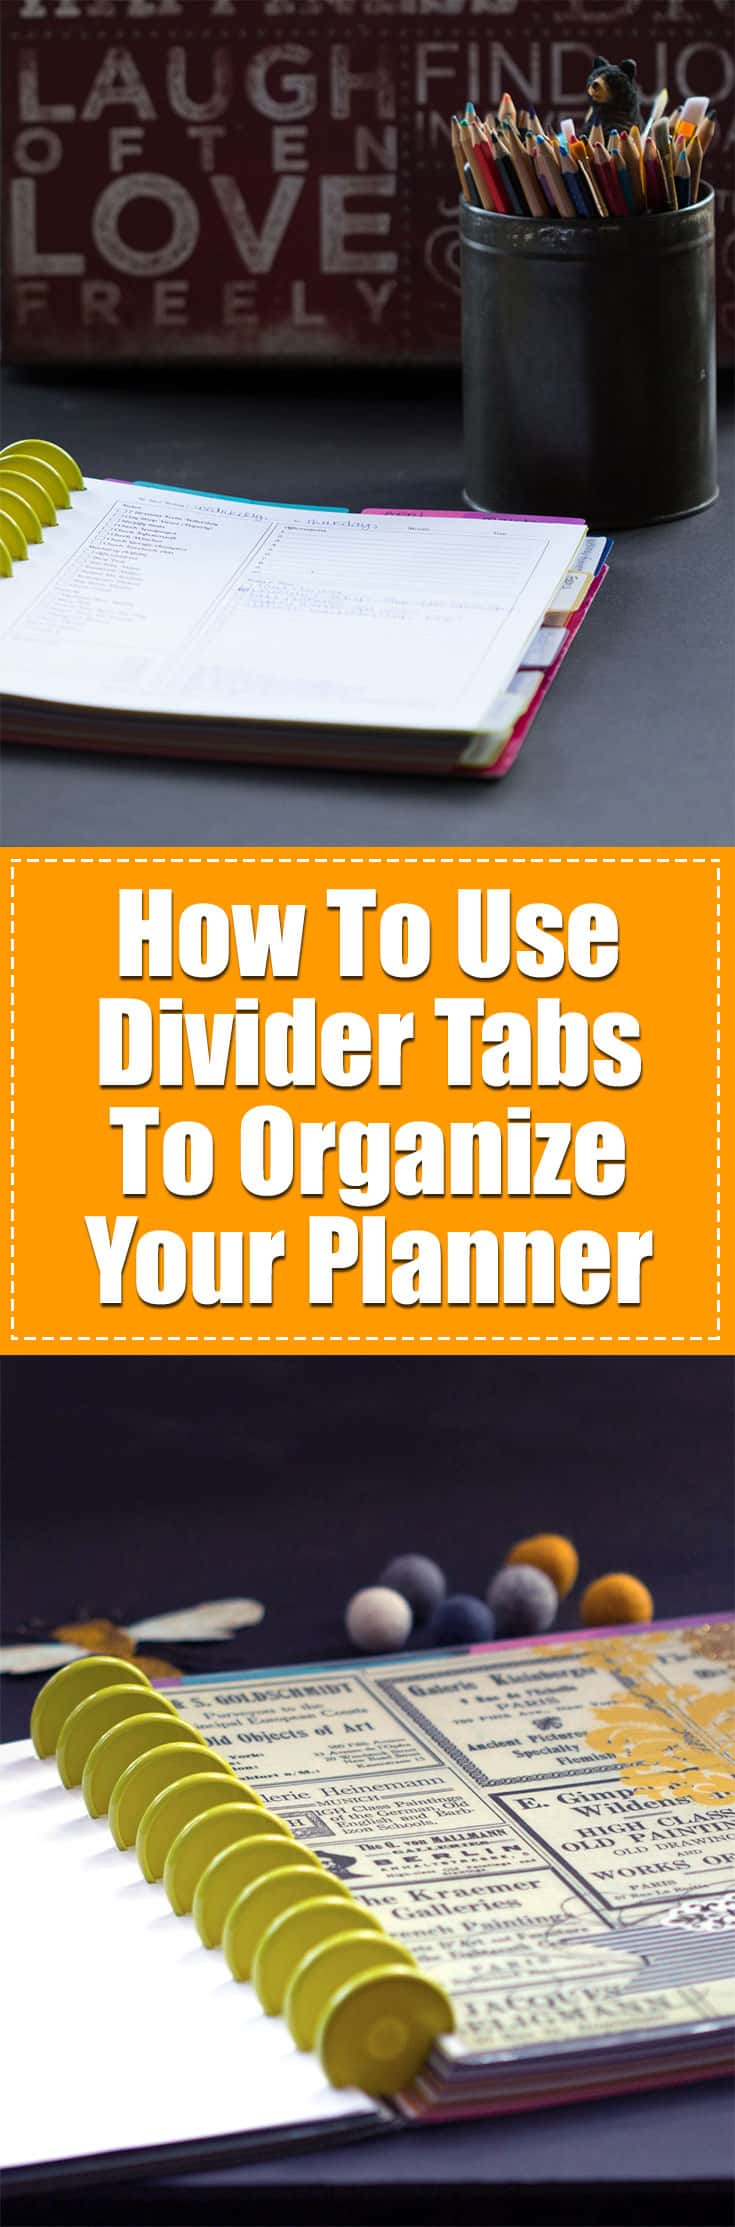 How To Use Divider Tabs To Organize Your Planner | If you are a planner nut like I am, you know that there are a gagillion ways to organize your planner. And for me this changes frequently throughout the year. I might be focusing on Blogging or making a course, doing product photography or writing a book at any given time throughout the year. I have to have a great system for using tab dividers to organize my planner (and my life!) This post will go over some of my strategies and tools that I use. Some are mass produced and some are my own DIY creations, but all add to the effectiveness of my planner!